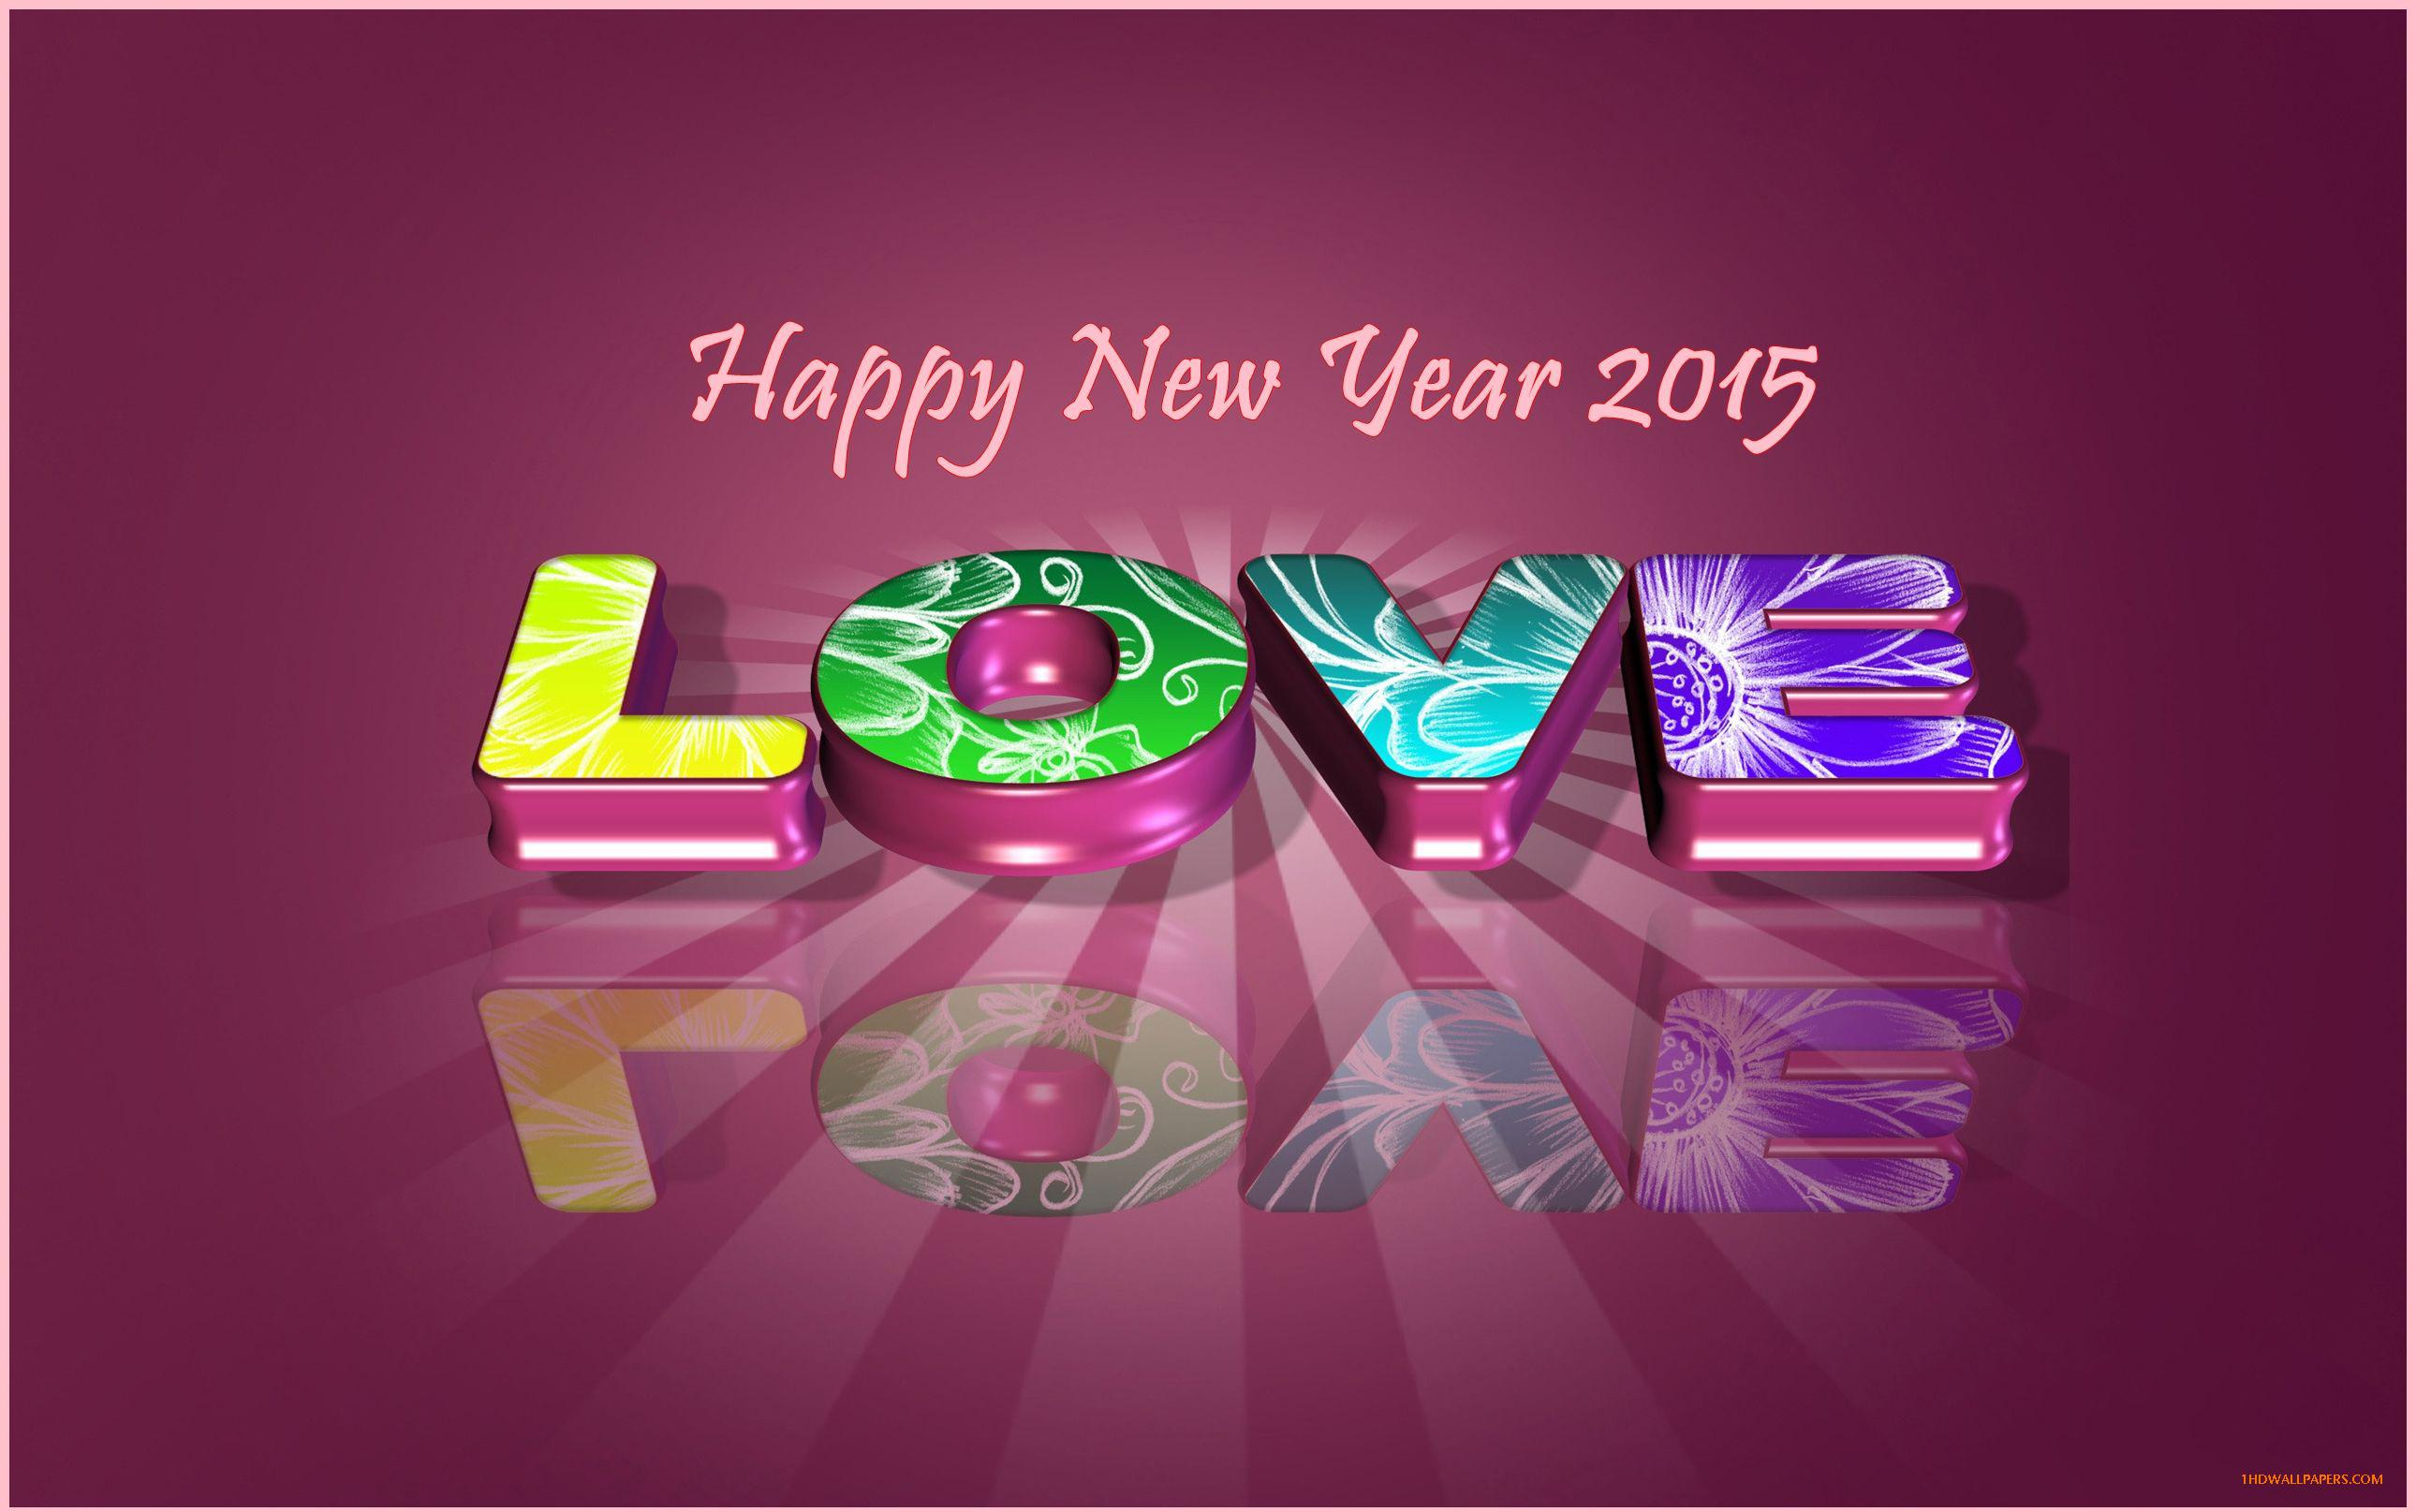 50 Happy New Year Wallpapers 2015 for Desktop 2580x1615